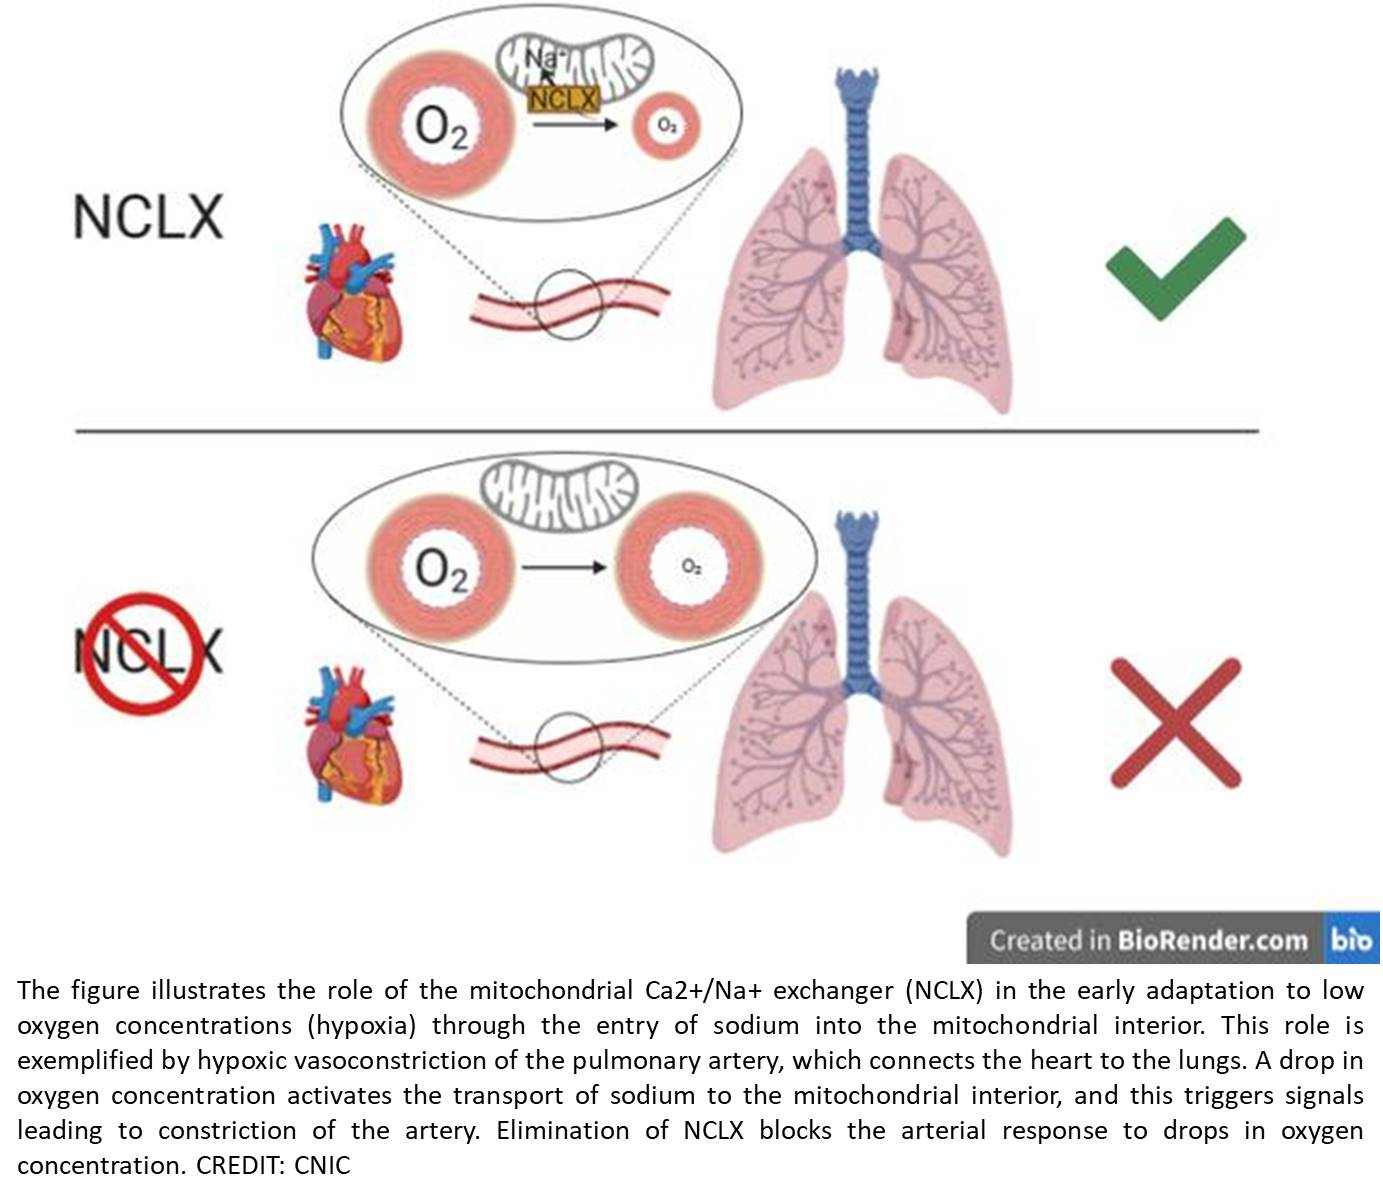 Sodium controls hypoxic signaling in the mitochondrial respiratory chain